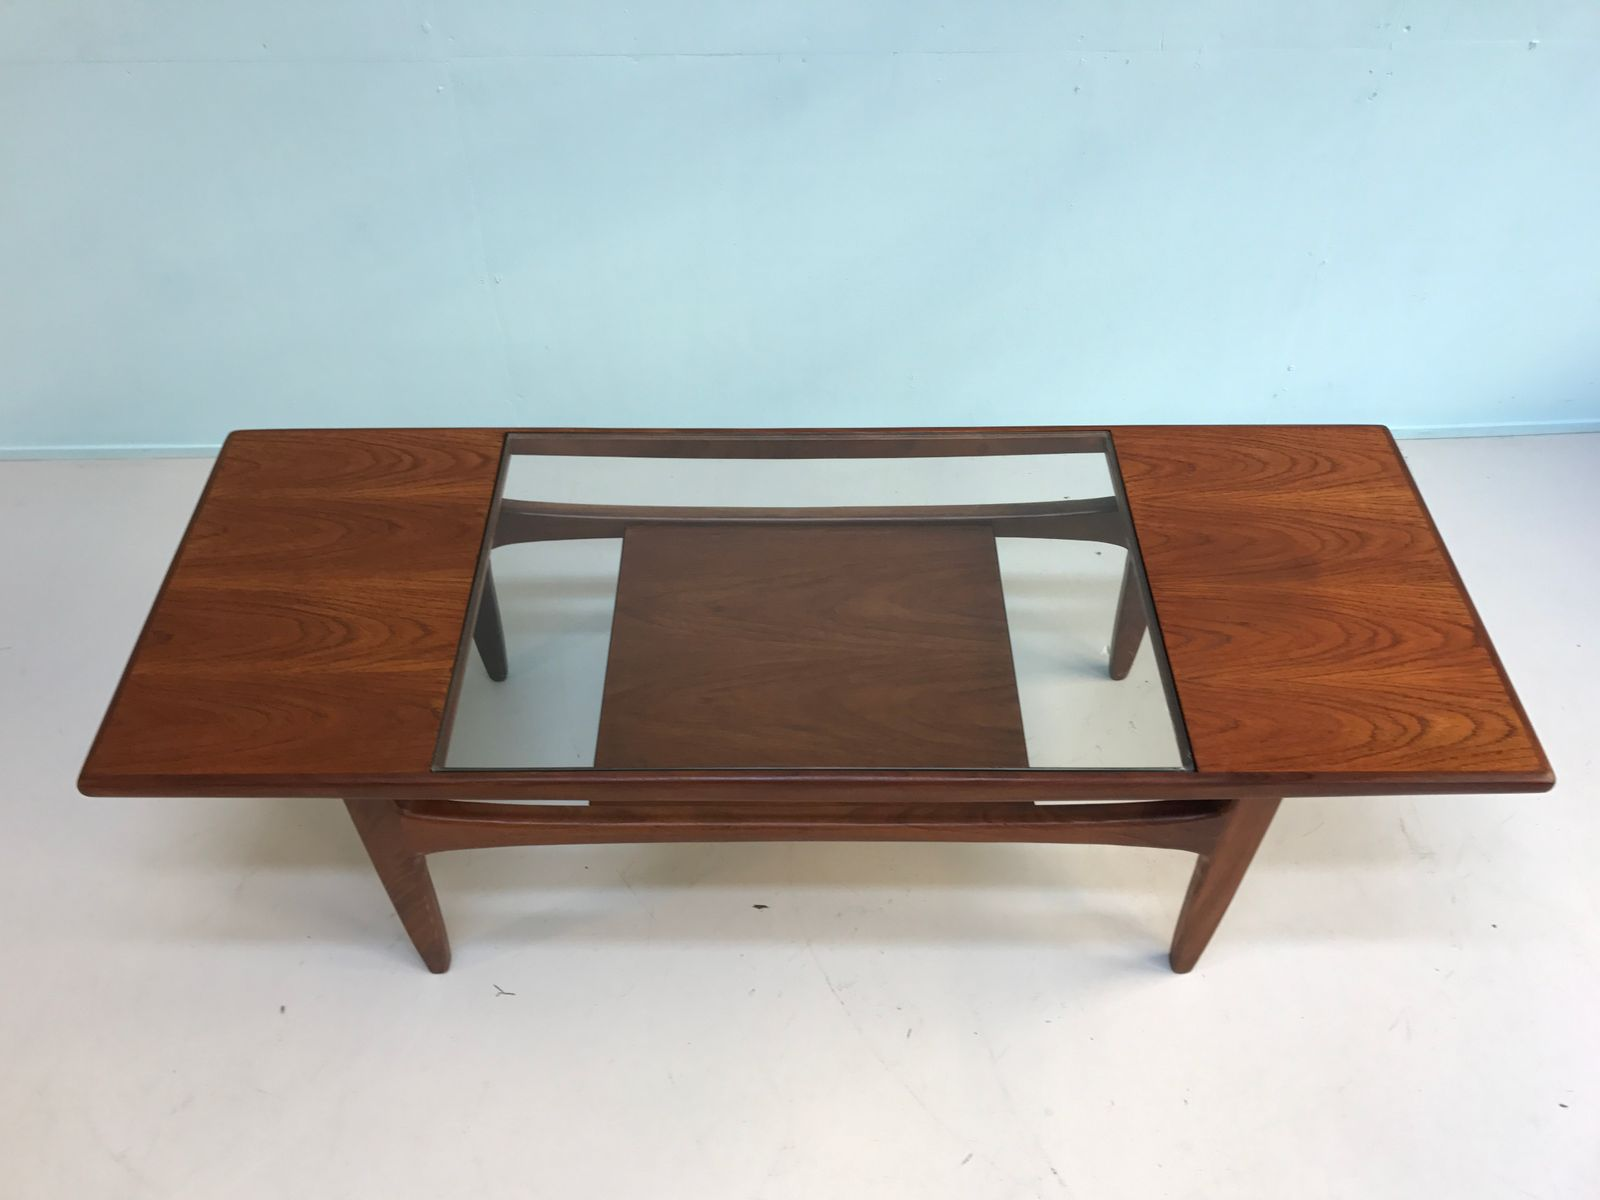 Teak And Glass Coffee Table Teak Glass Coffee Table From G Plan 1960s For Sale At Pamono